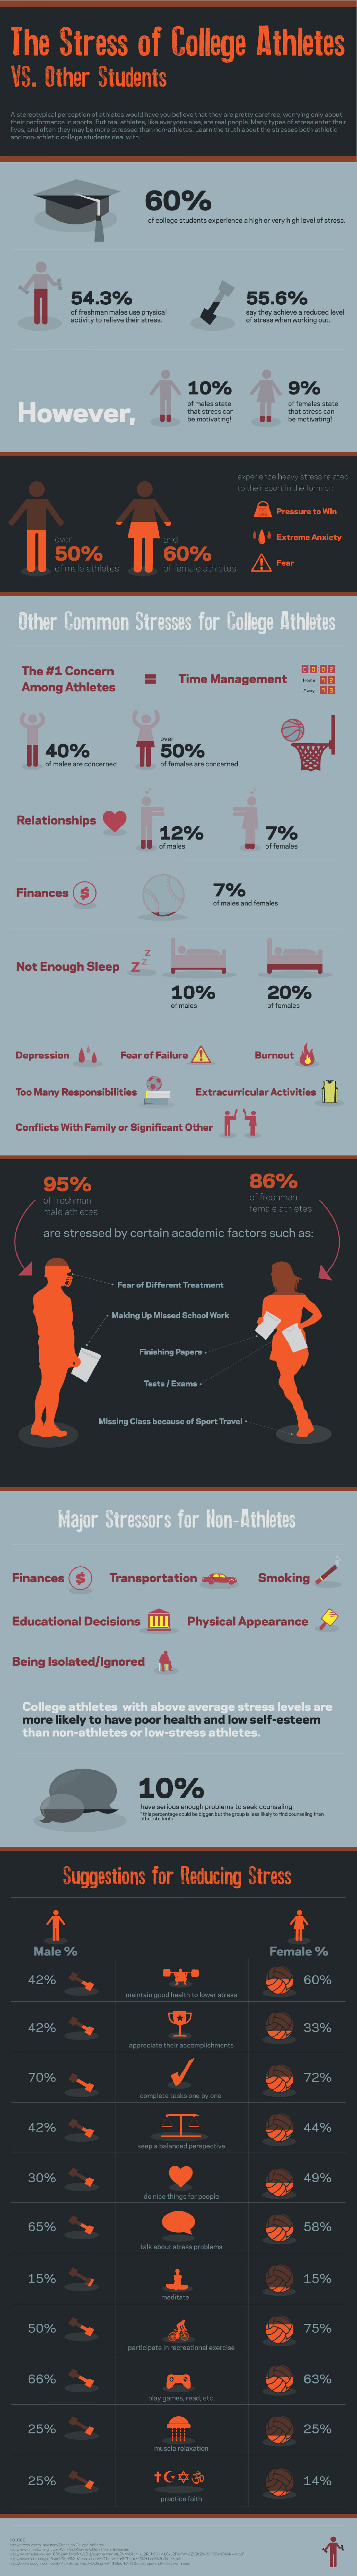 college student perceived stress athlete vs Request pdf on researchgate | on dec 1, 2008, brianna m scott and others published in-season vs out-of-season academic performance of college student-athletes.